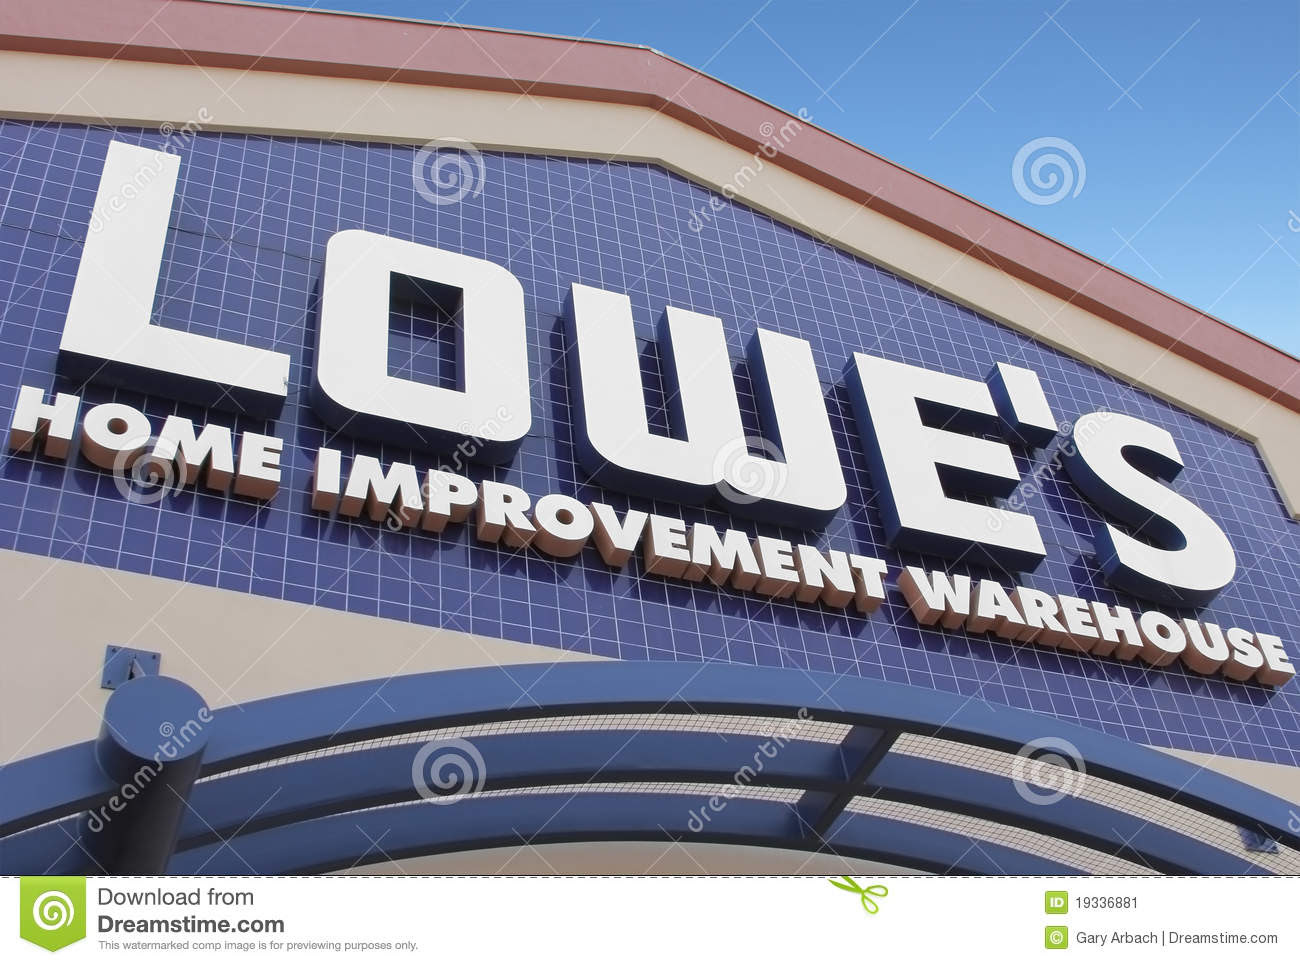 Outstanding Lowe's Home Improvement Warehouse Store 1300 x 965 · 168 kB · jpeg